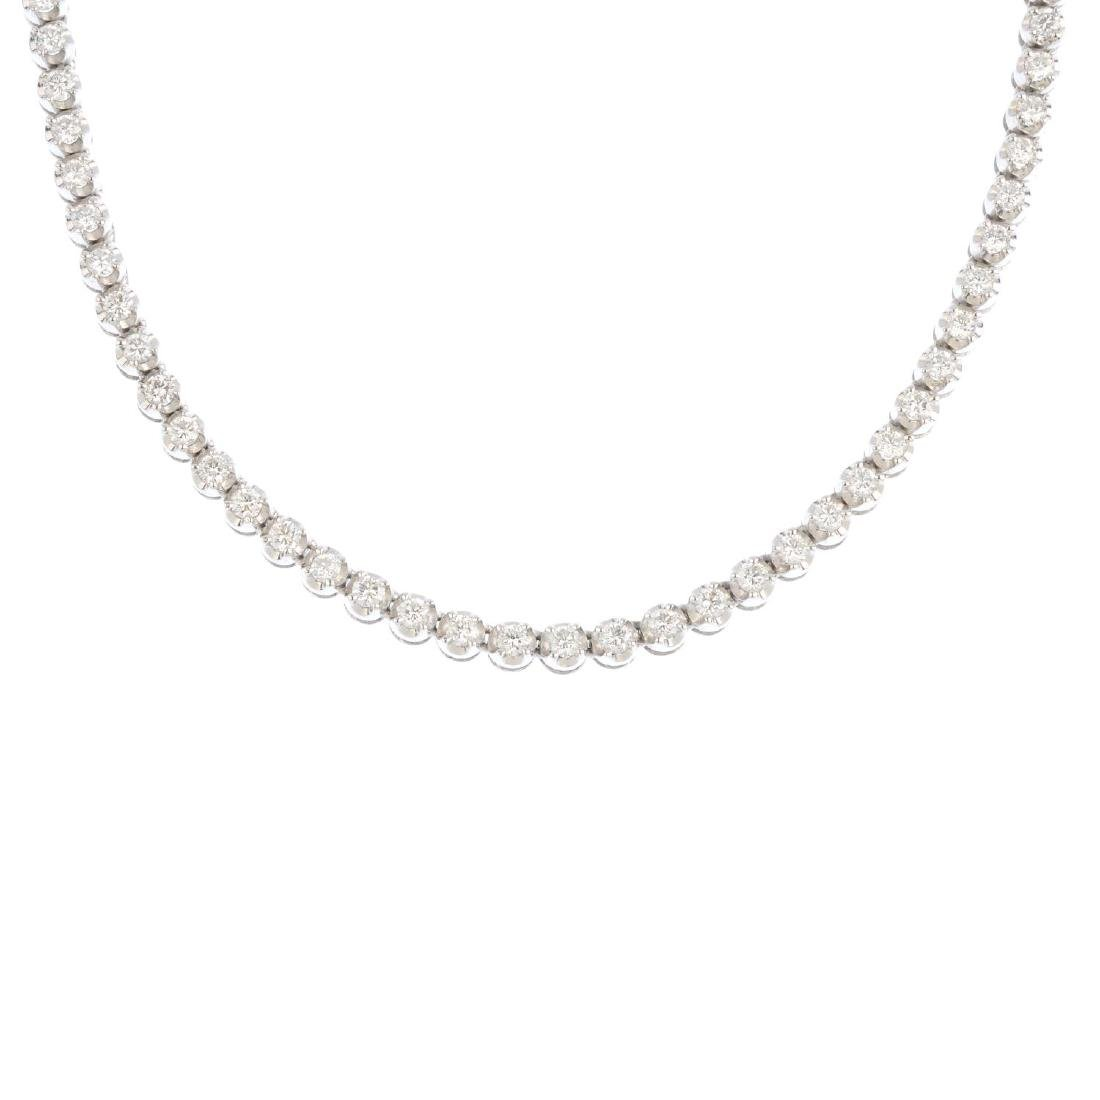 A diamond necklace. Designed as a series of